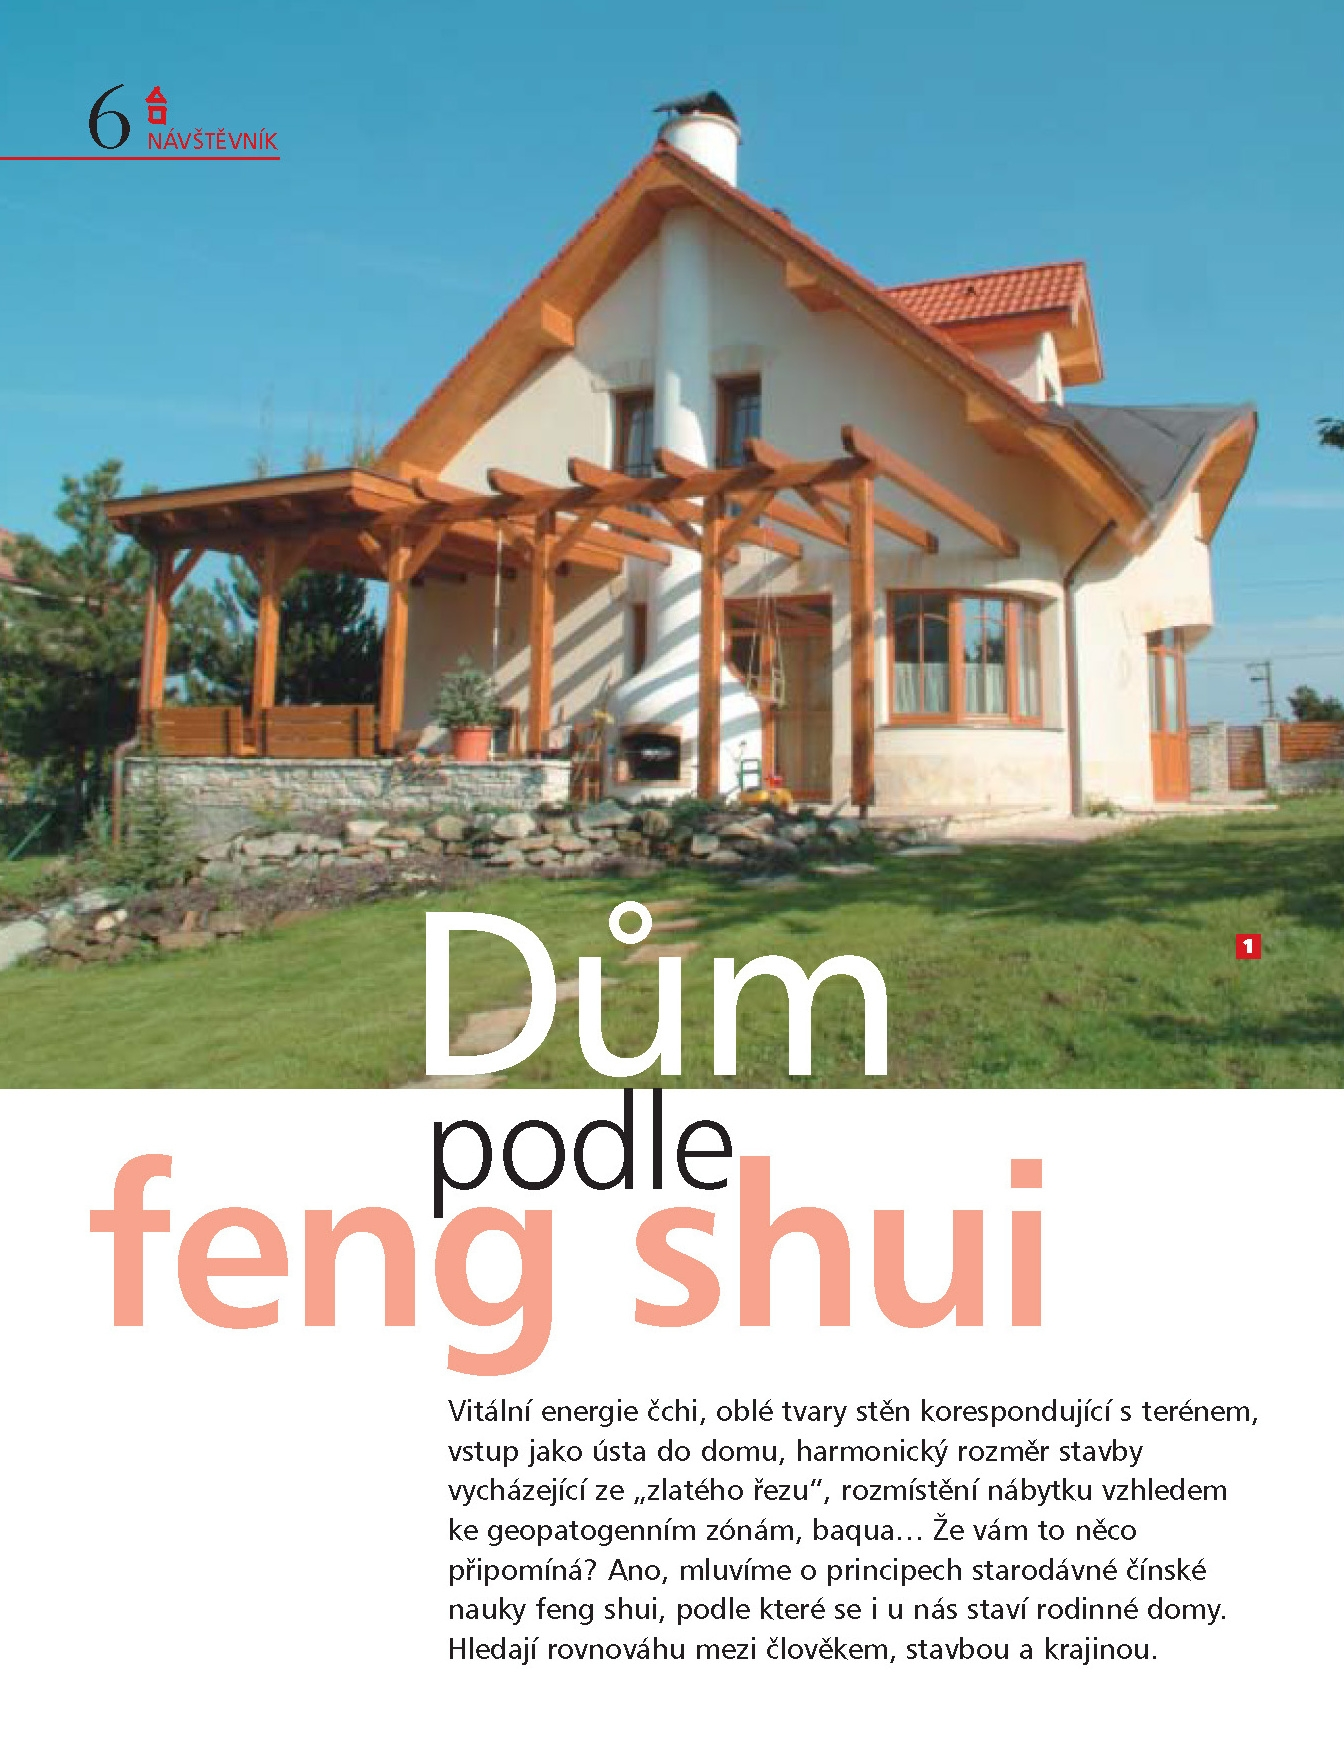 House in accordance with feng shui principles studio arc for Feng shui in house